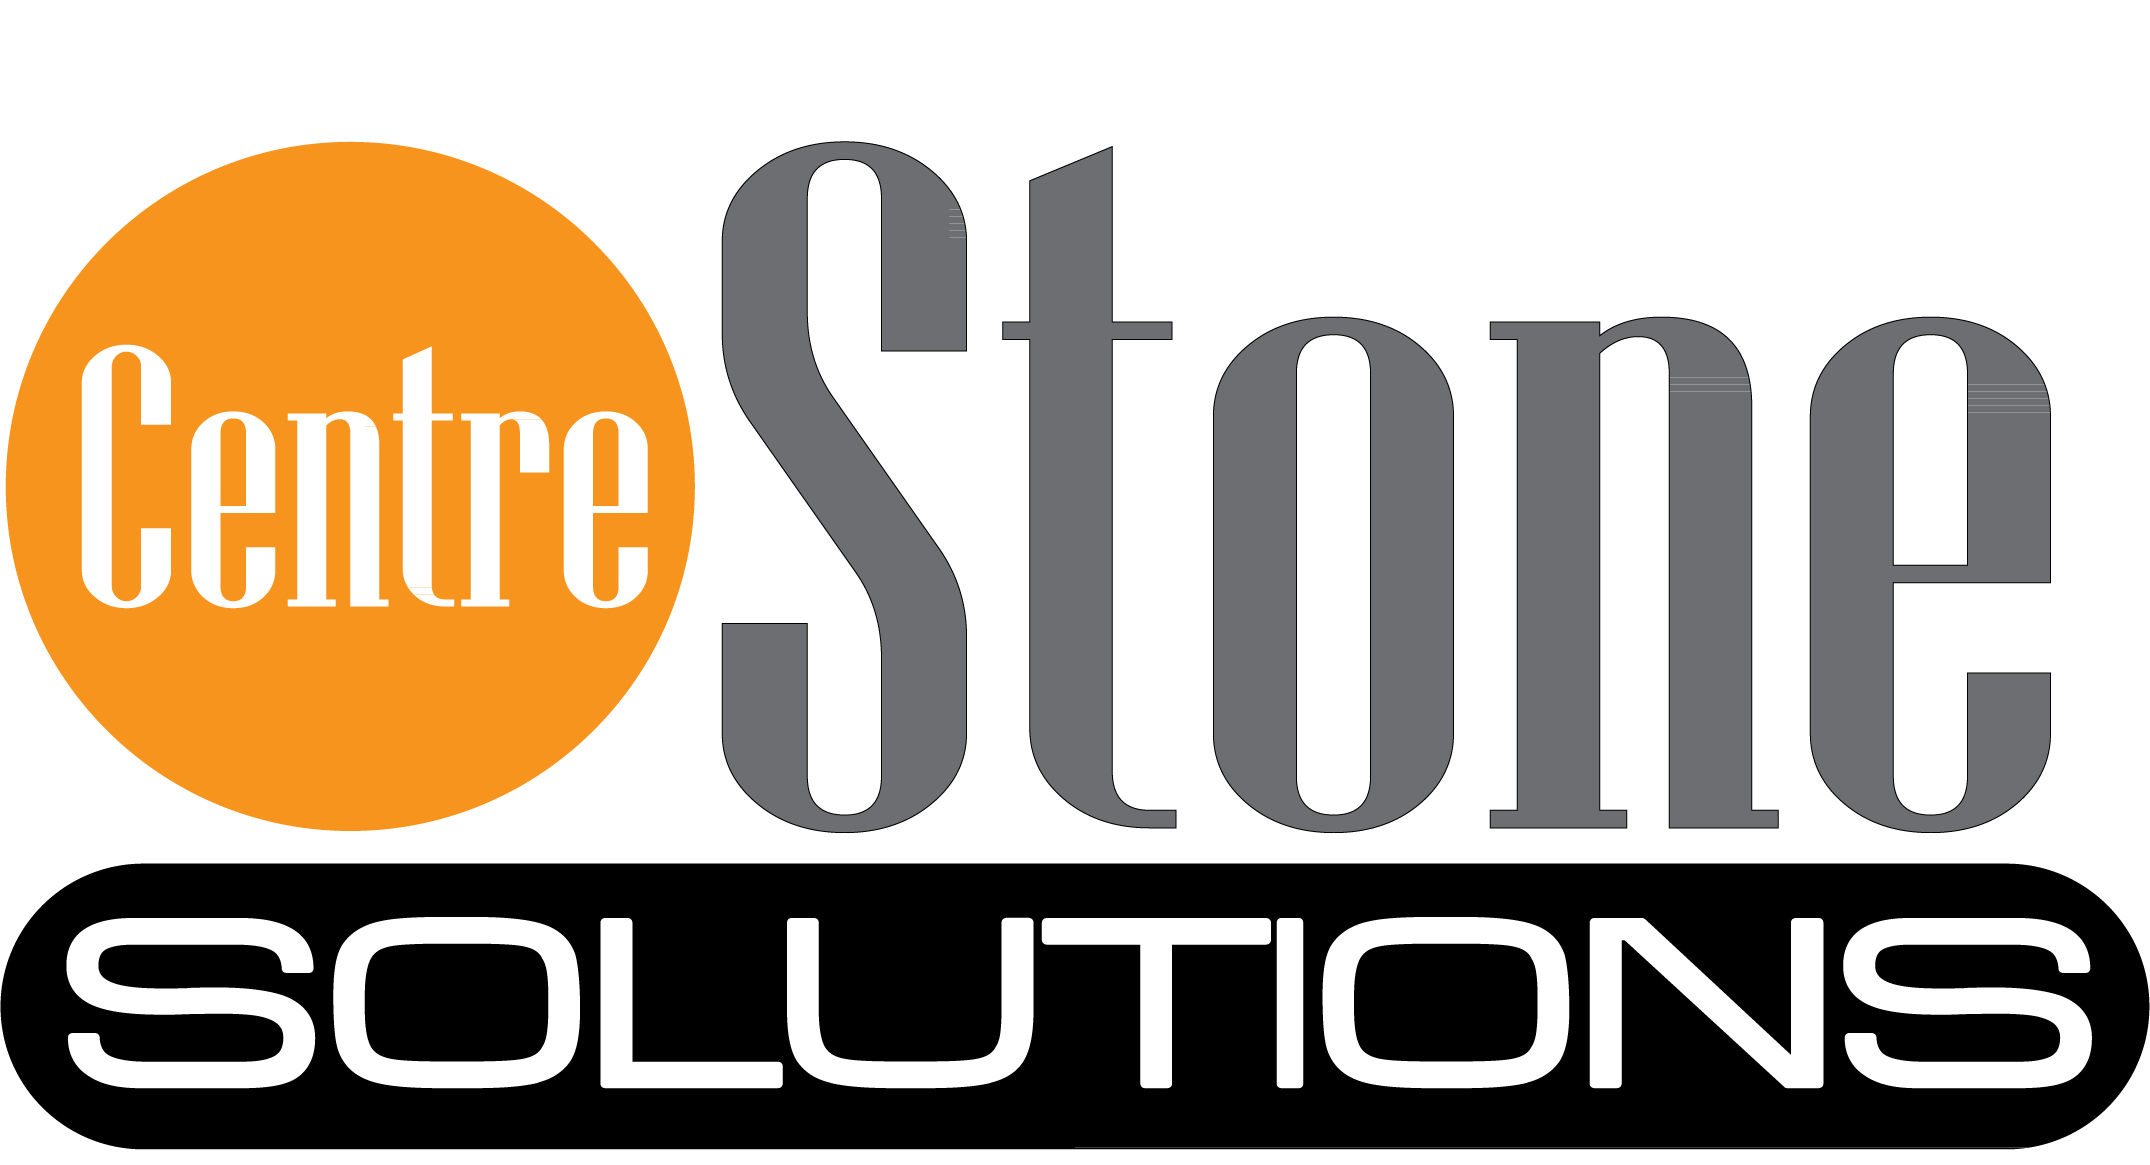 Centre Stone Solutions